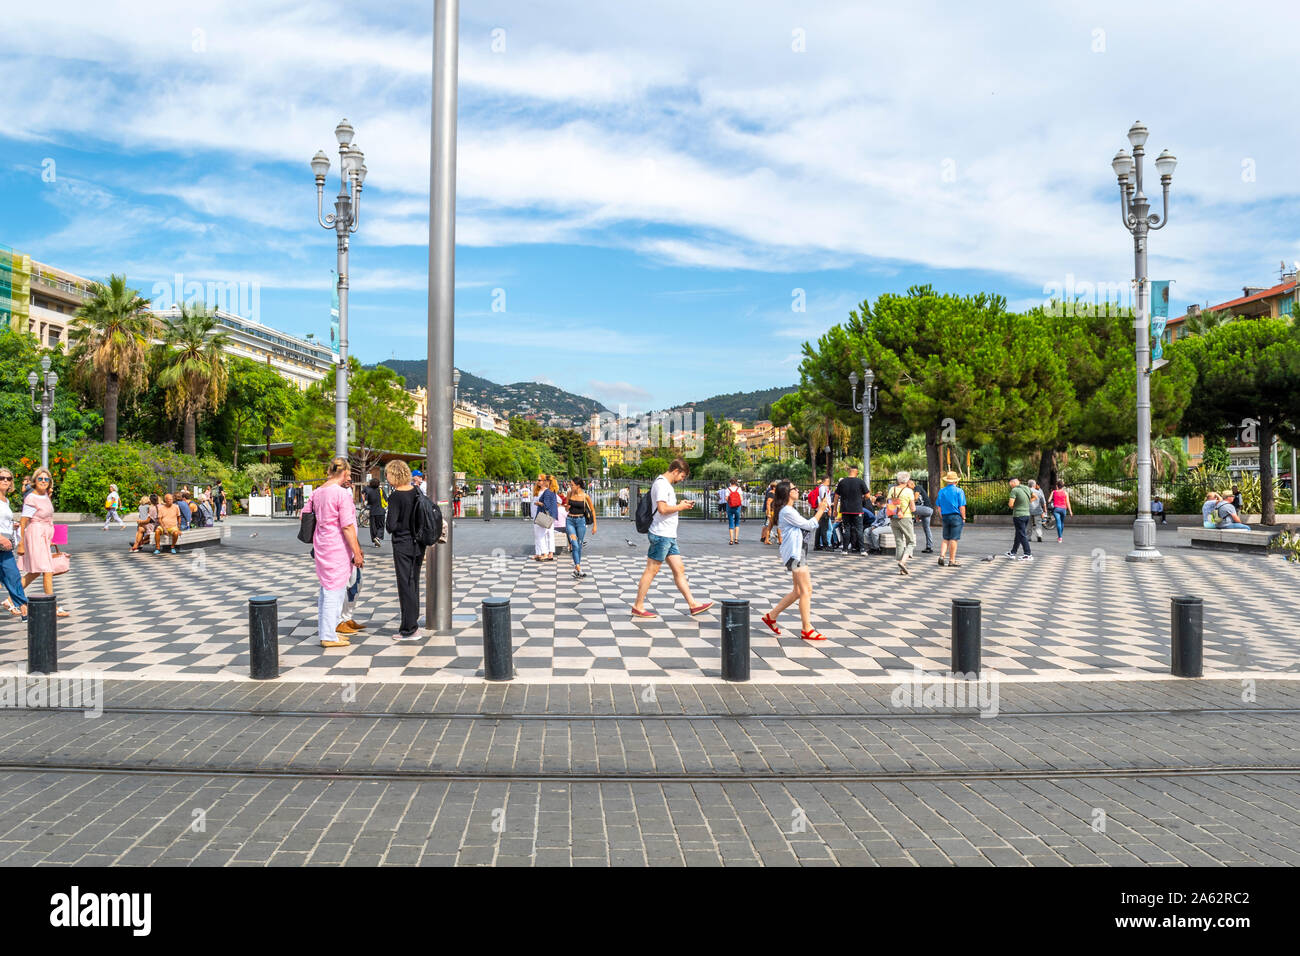 Tourists enjoy a pleasant day on the French Riviera as they stroll Place Massena with Promenade du Paillon water park in the distance in Nice France Stock Photo